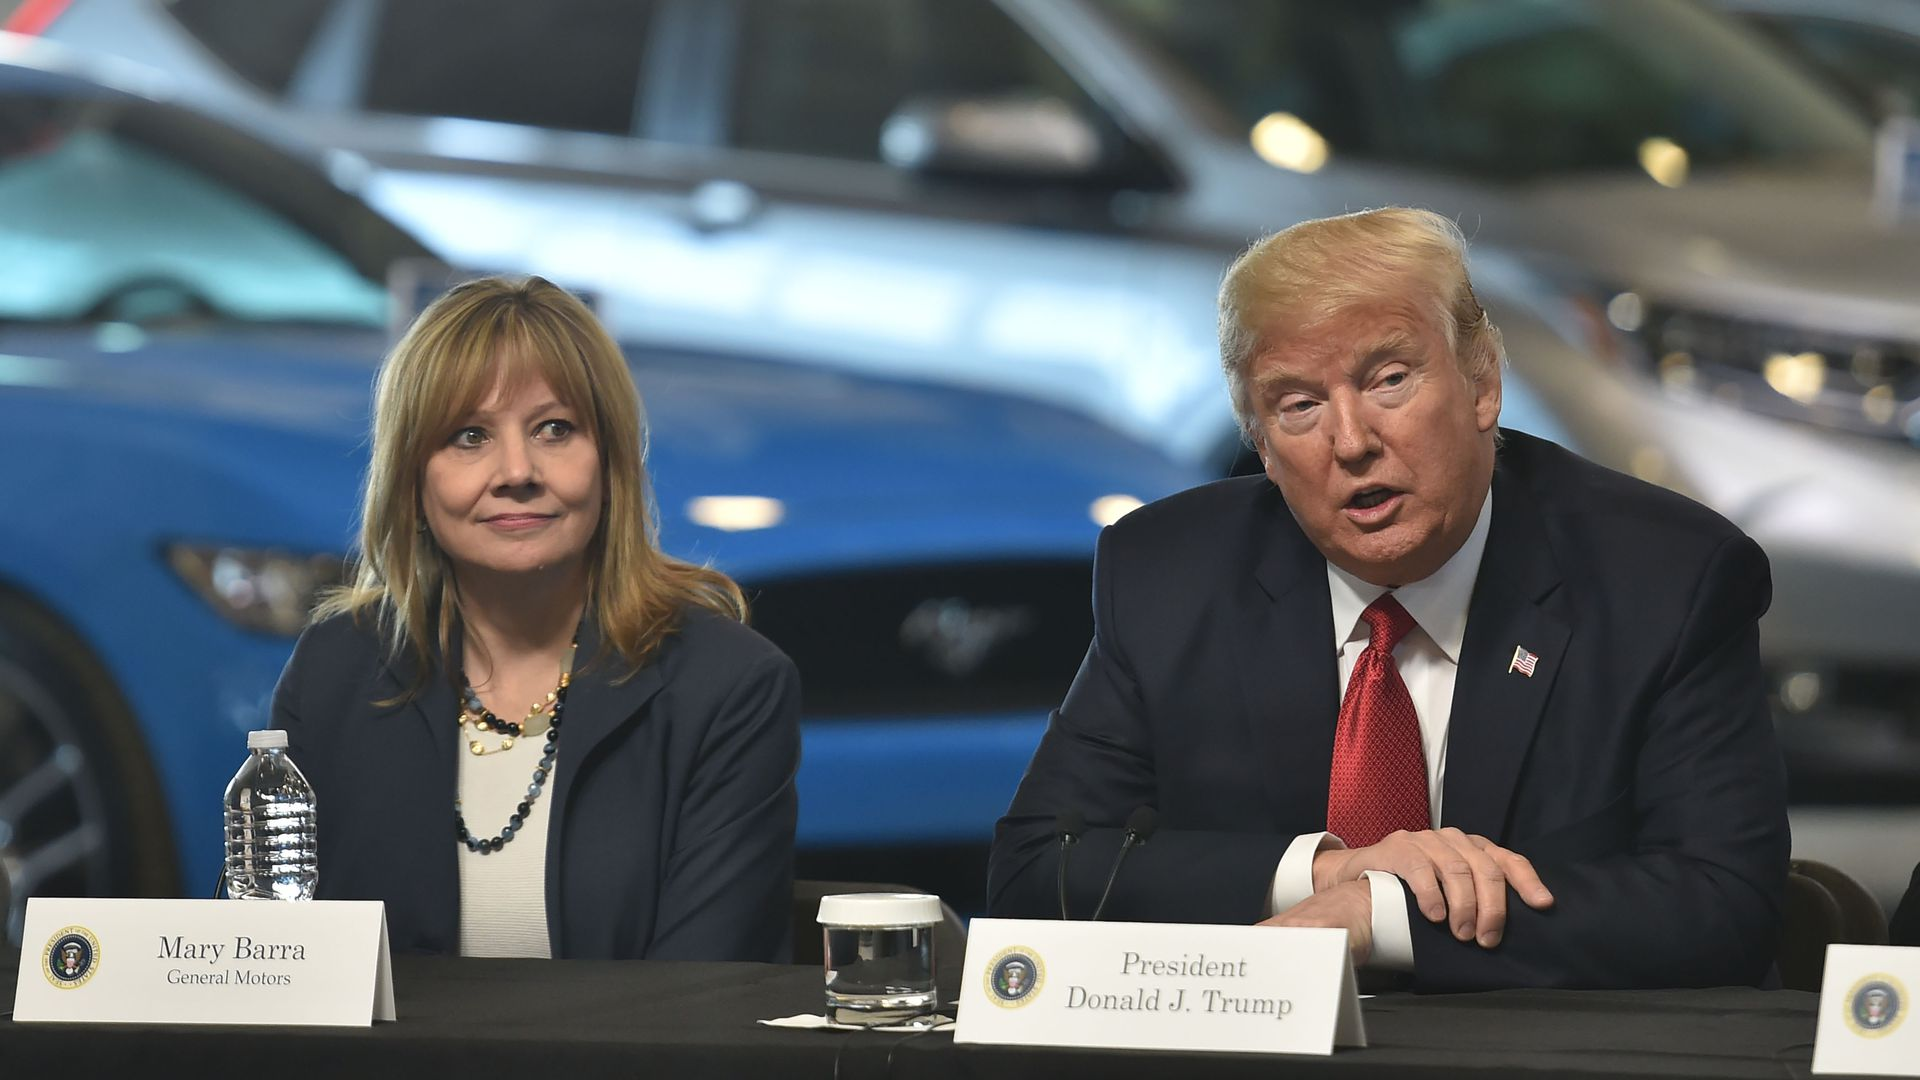 President Trump and GM CEO Mary Barra